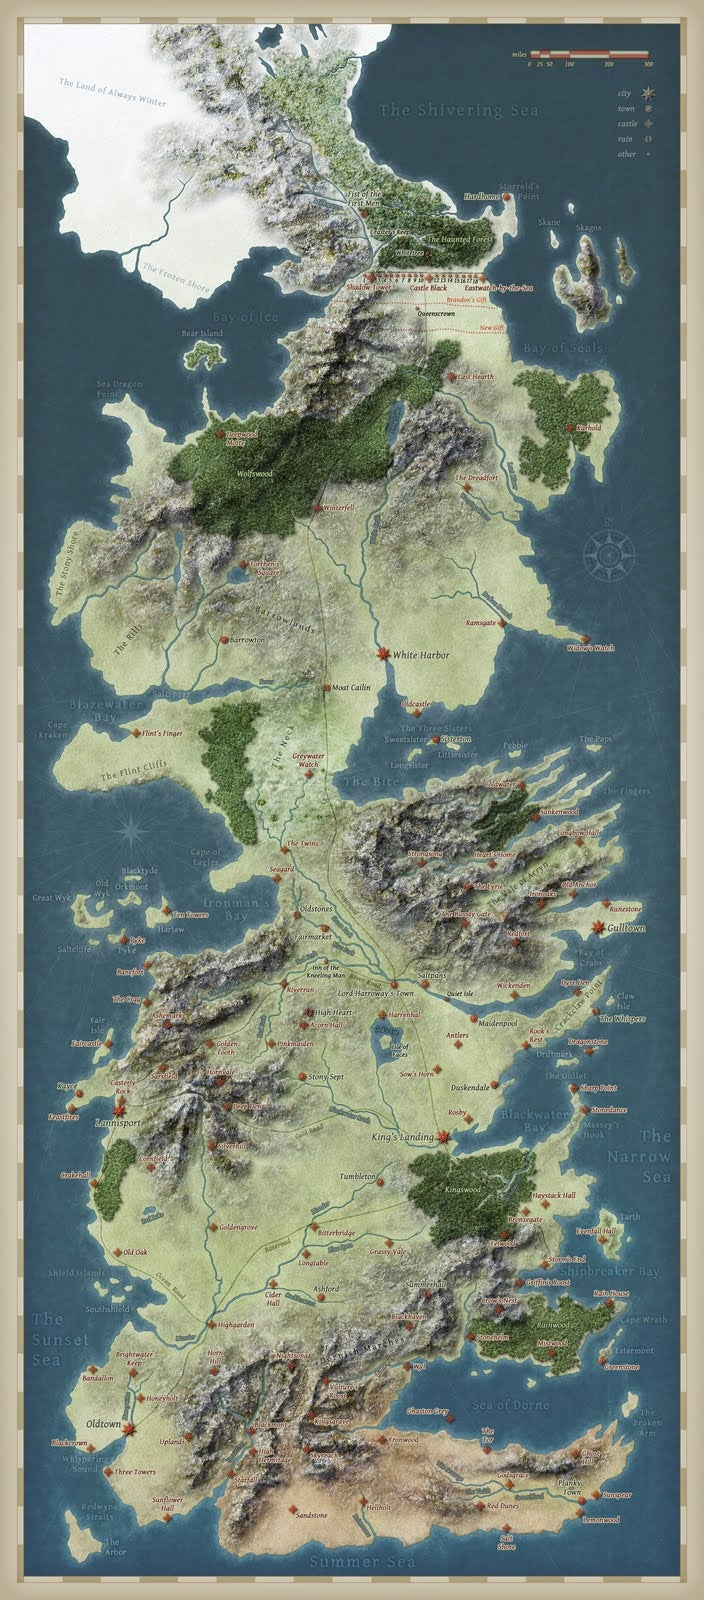 Mapping the Seven Kingdoms